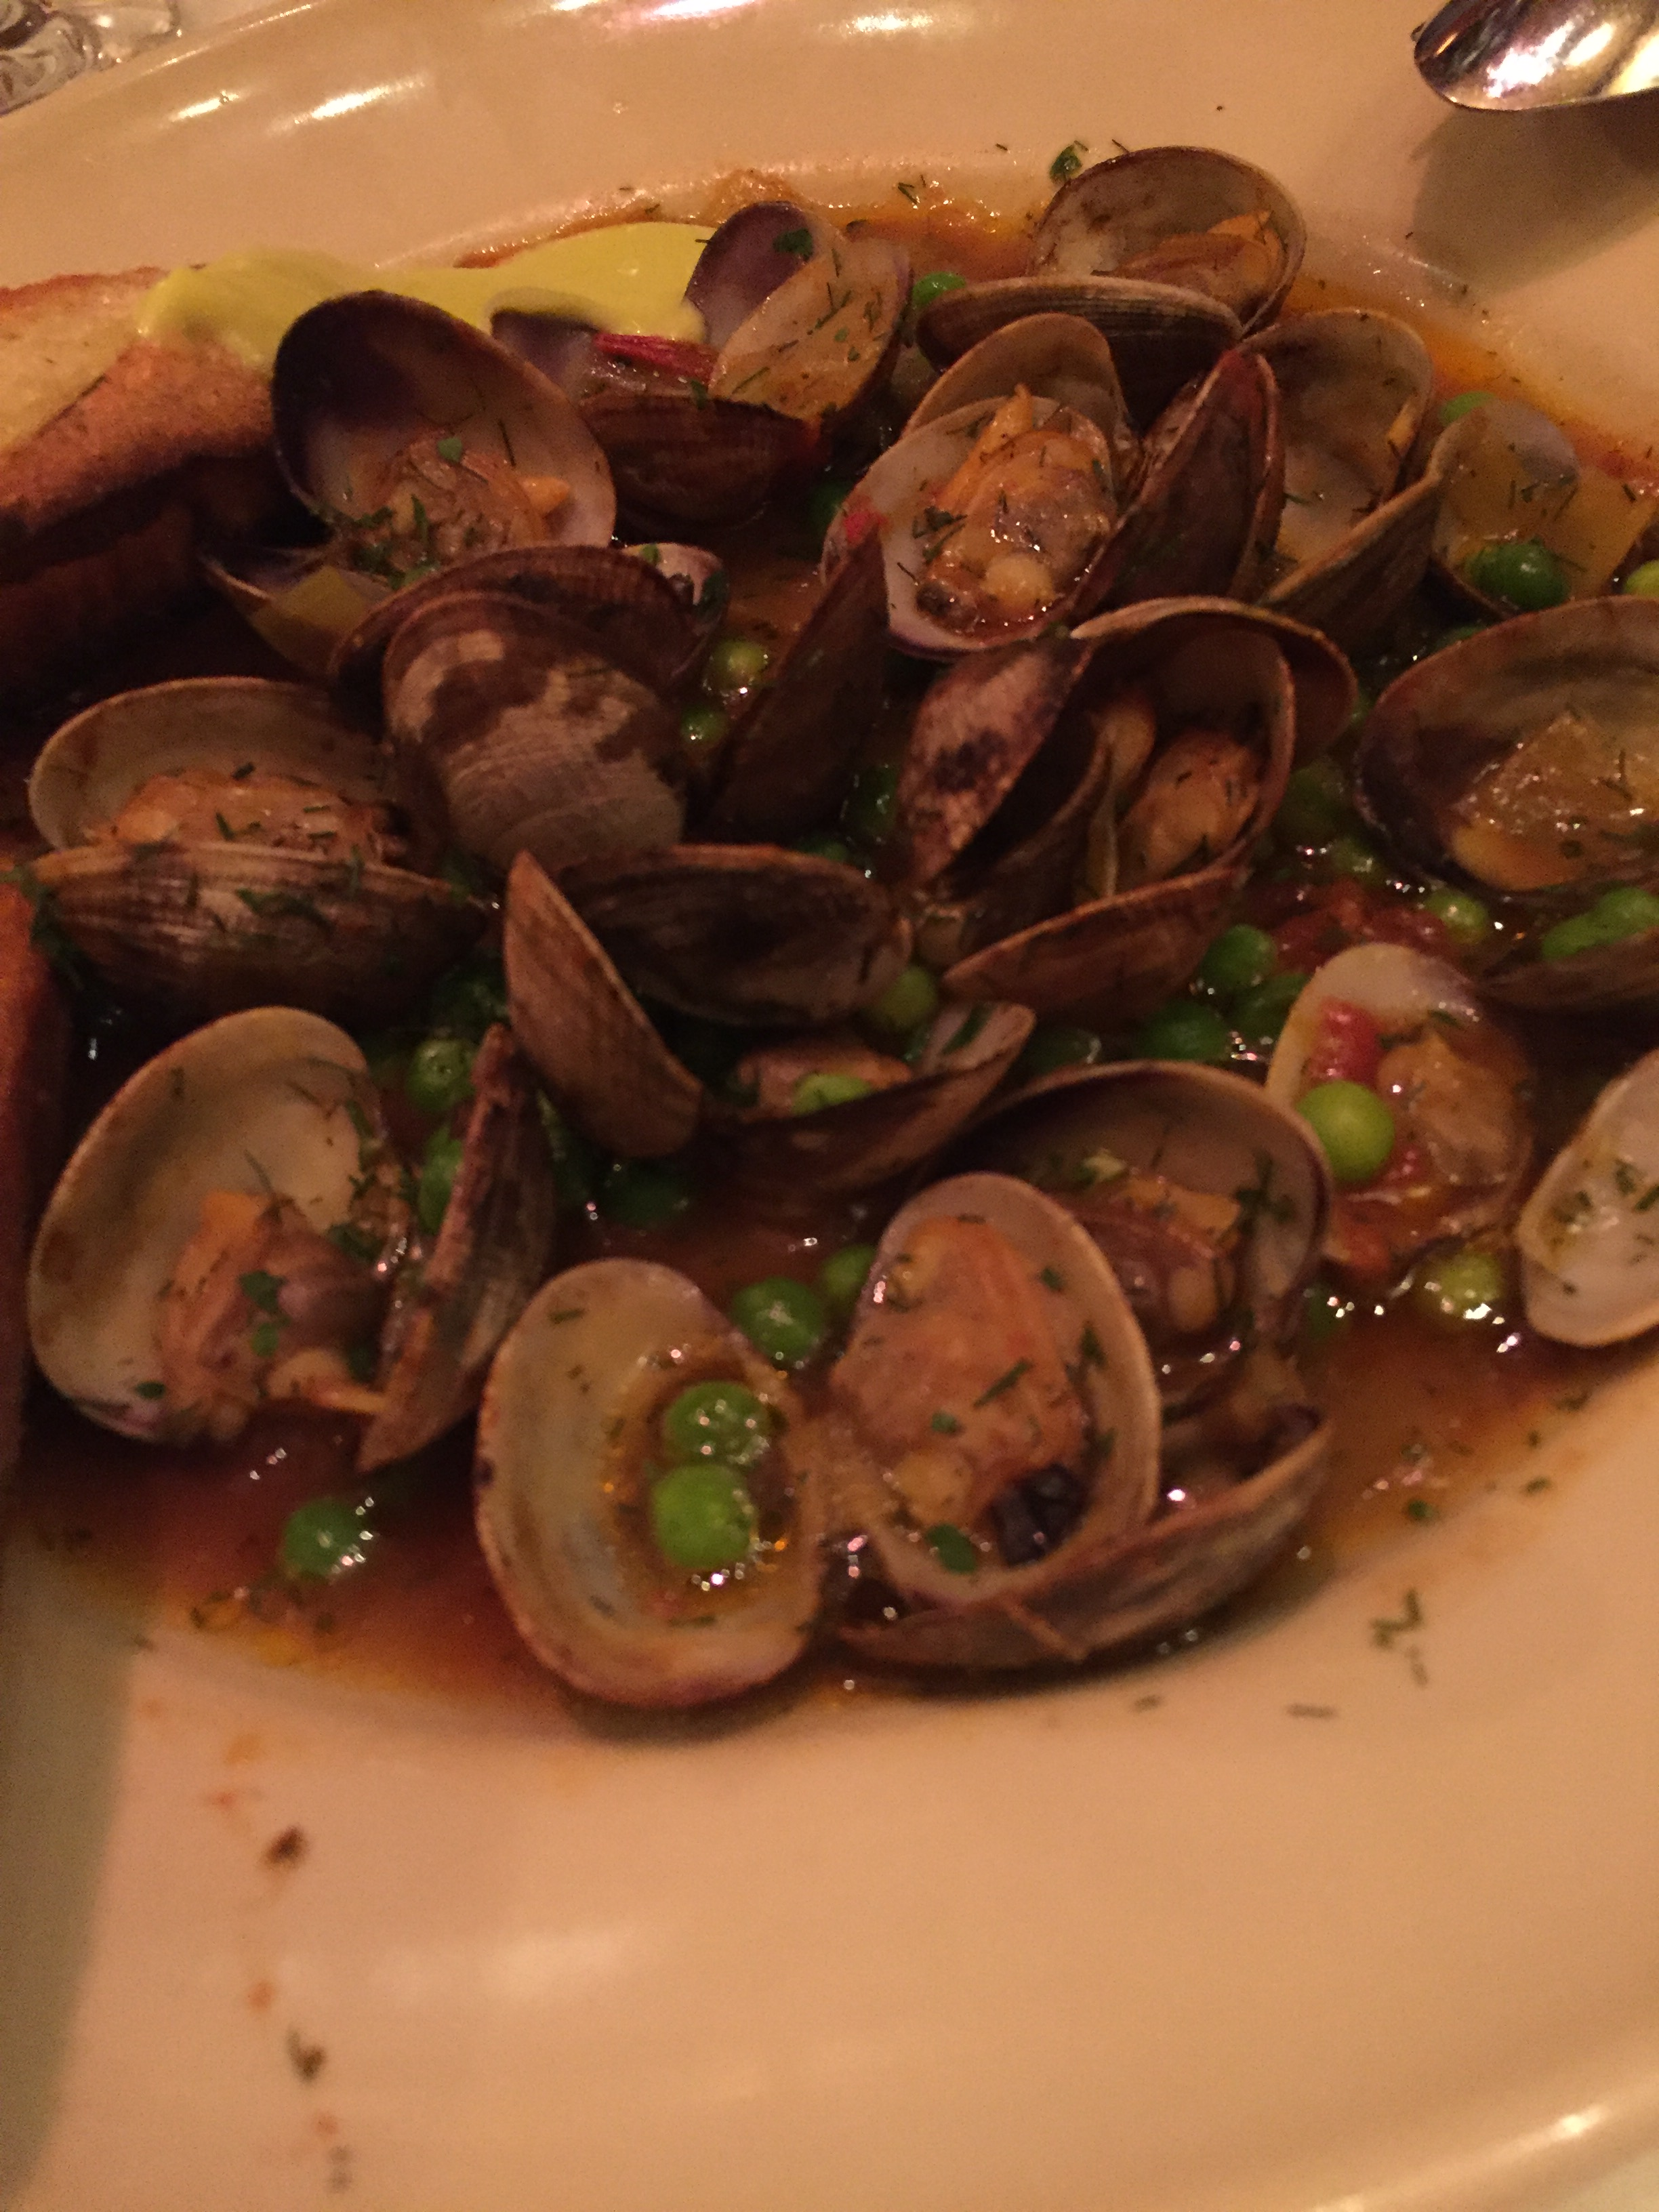 Fresh peas made another appearance, this time in these baby clams, it was tres magnifique!